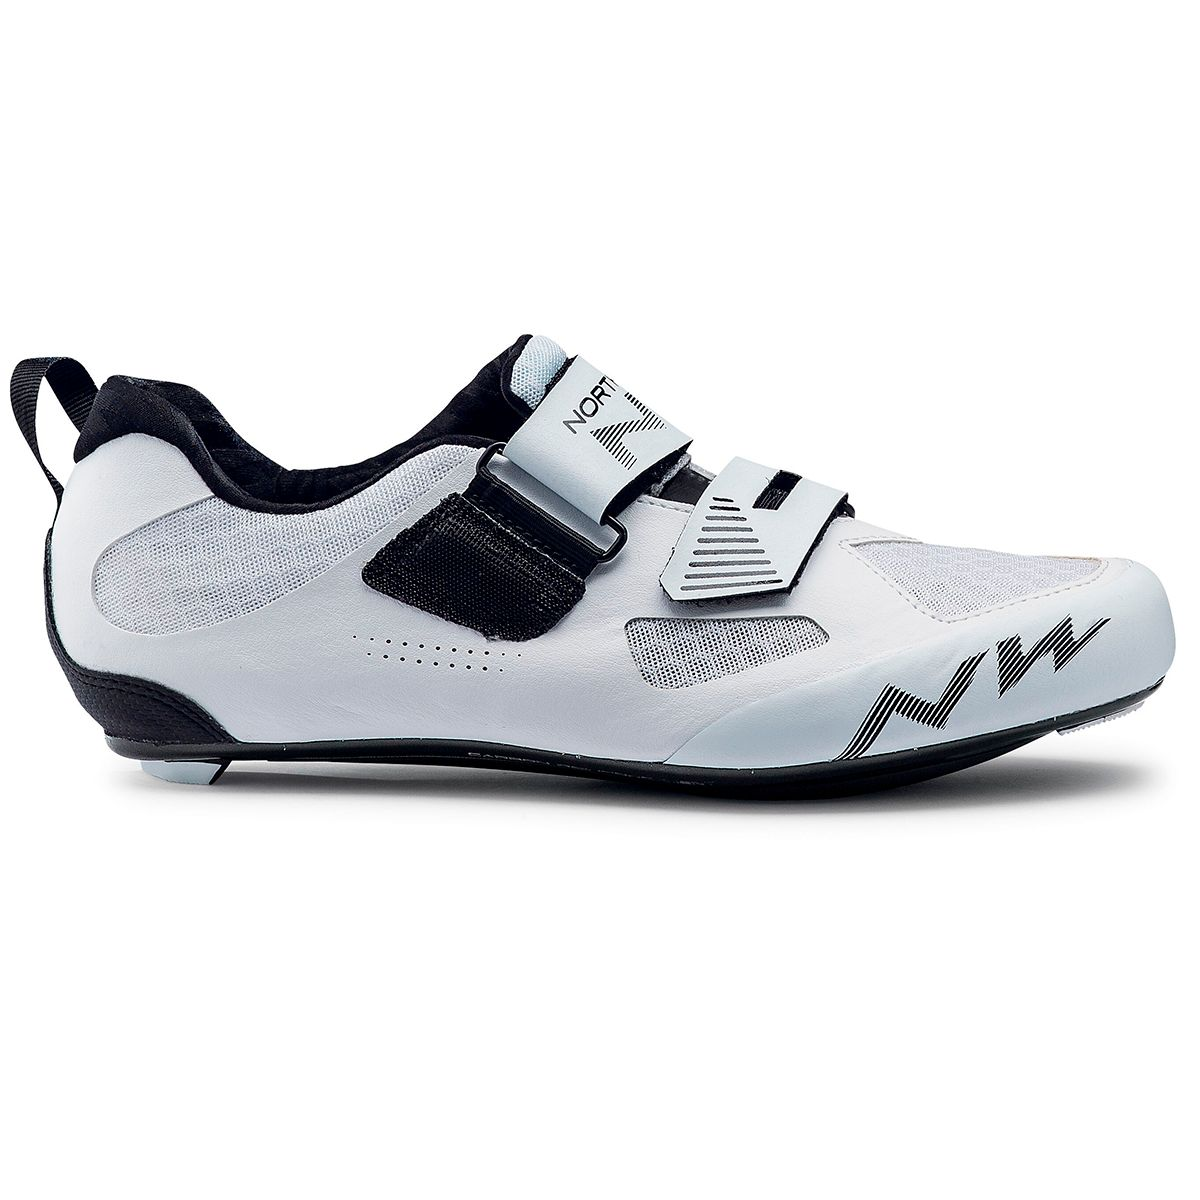 TRIBUTE 2 Triathlon Shoes